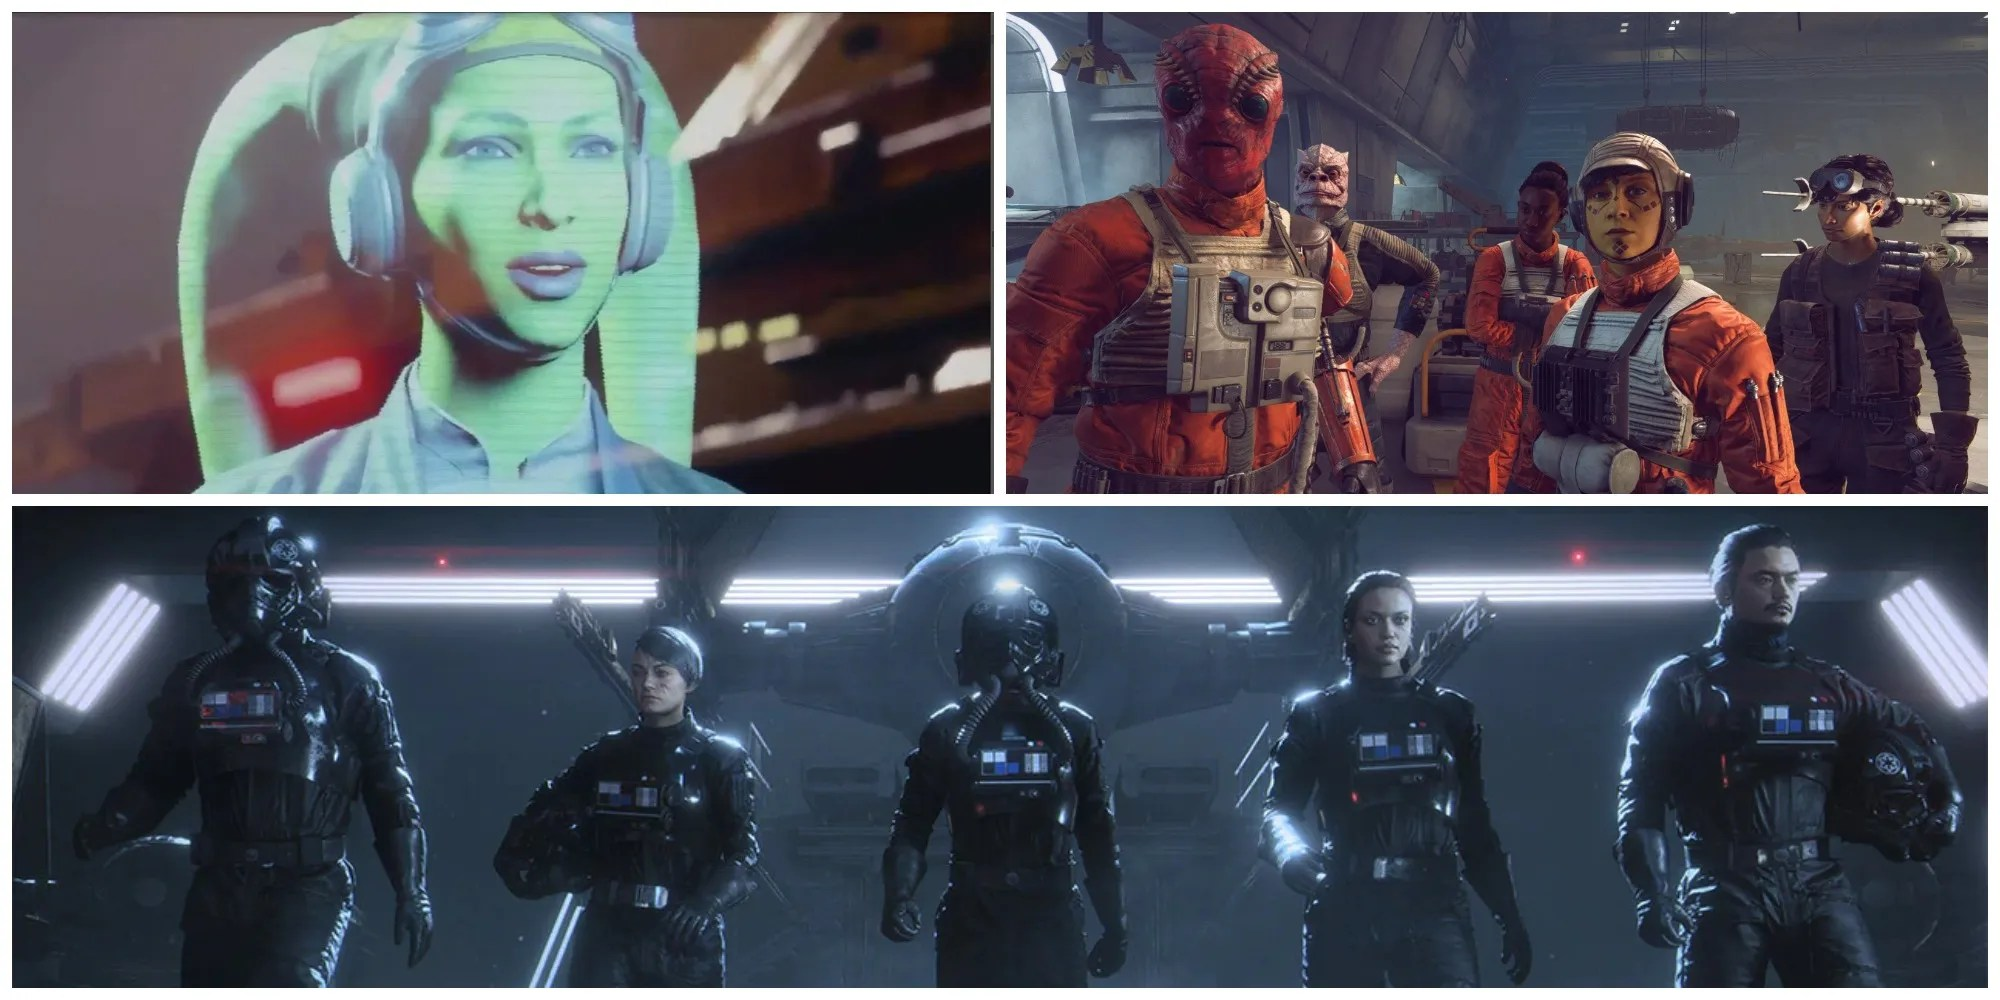 Star Wars Squadrons 10 Hidden Details About The Main